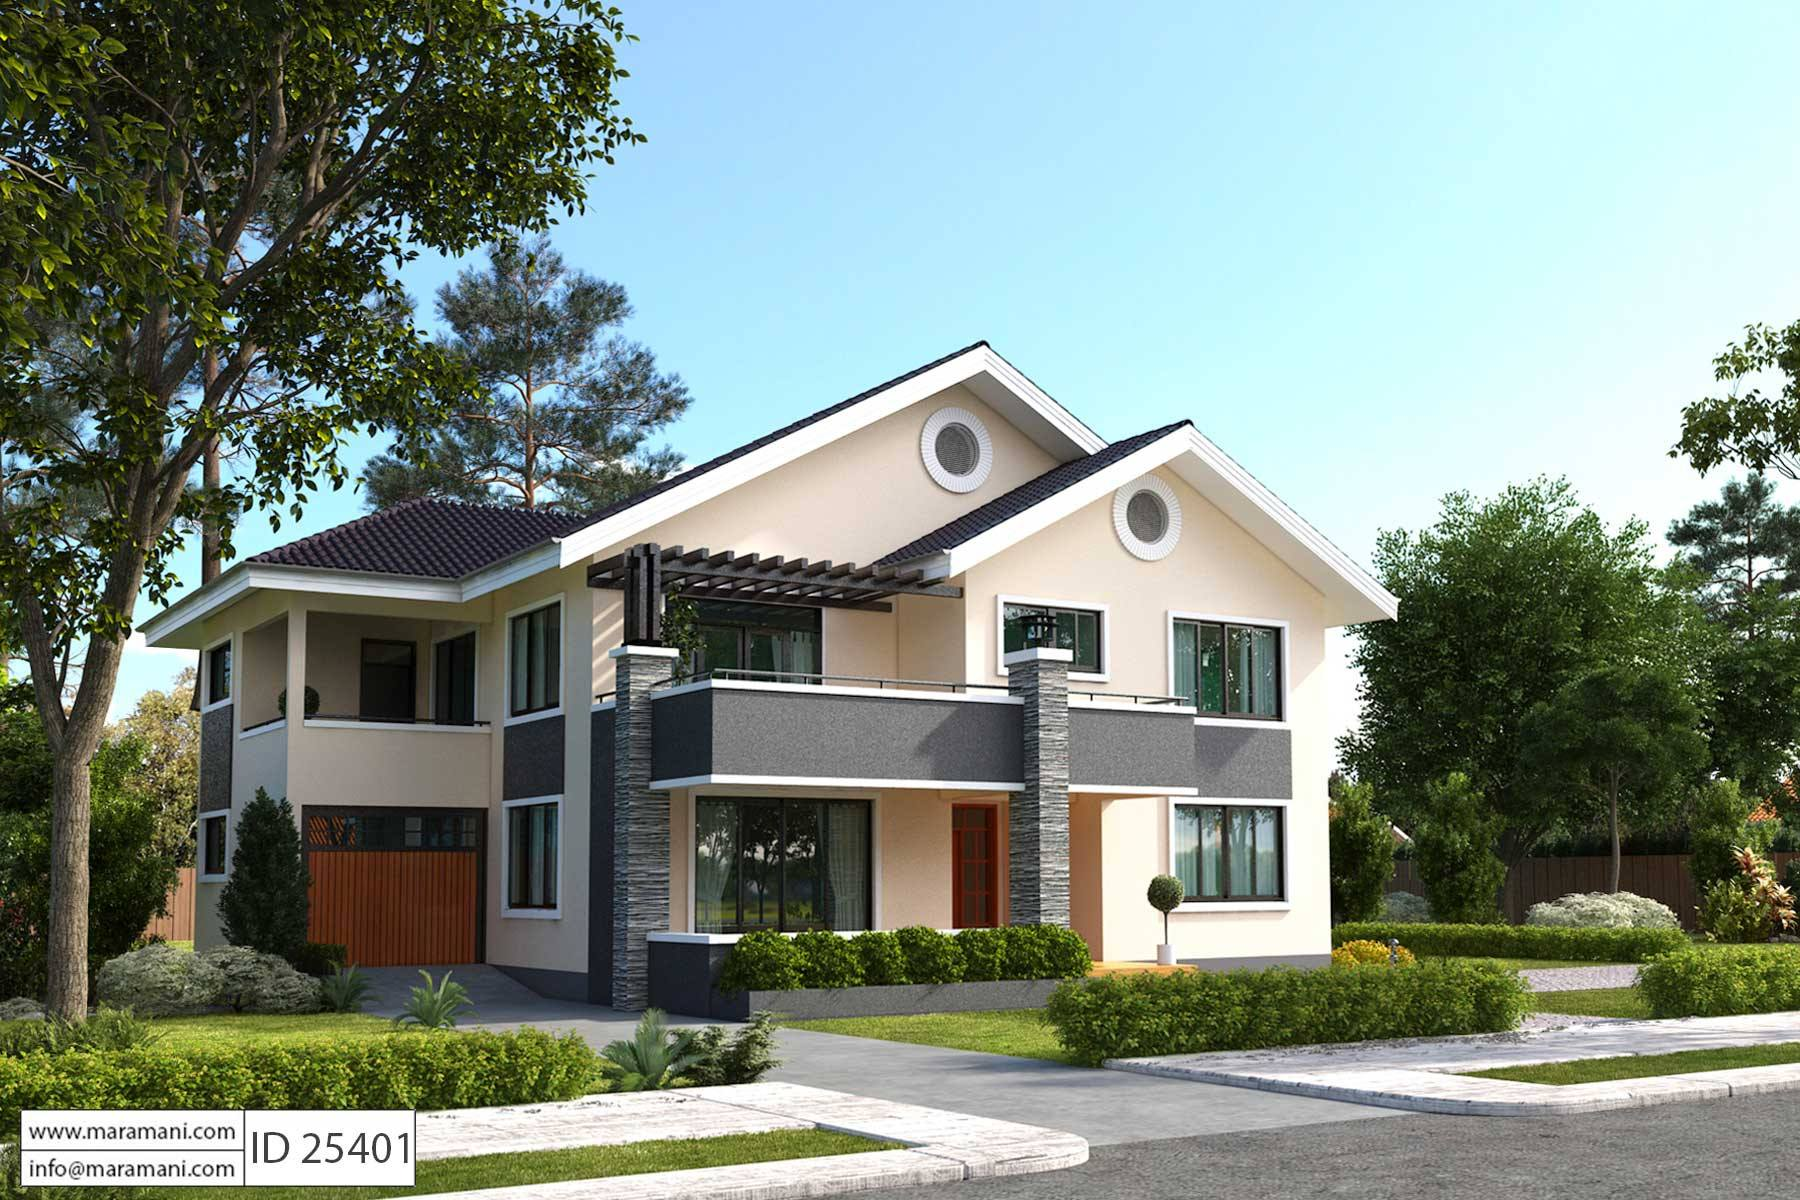 5 bedroom house plan id 25401 floor plans by maramani for 5 bedroom apartments